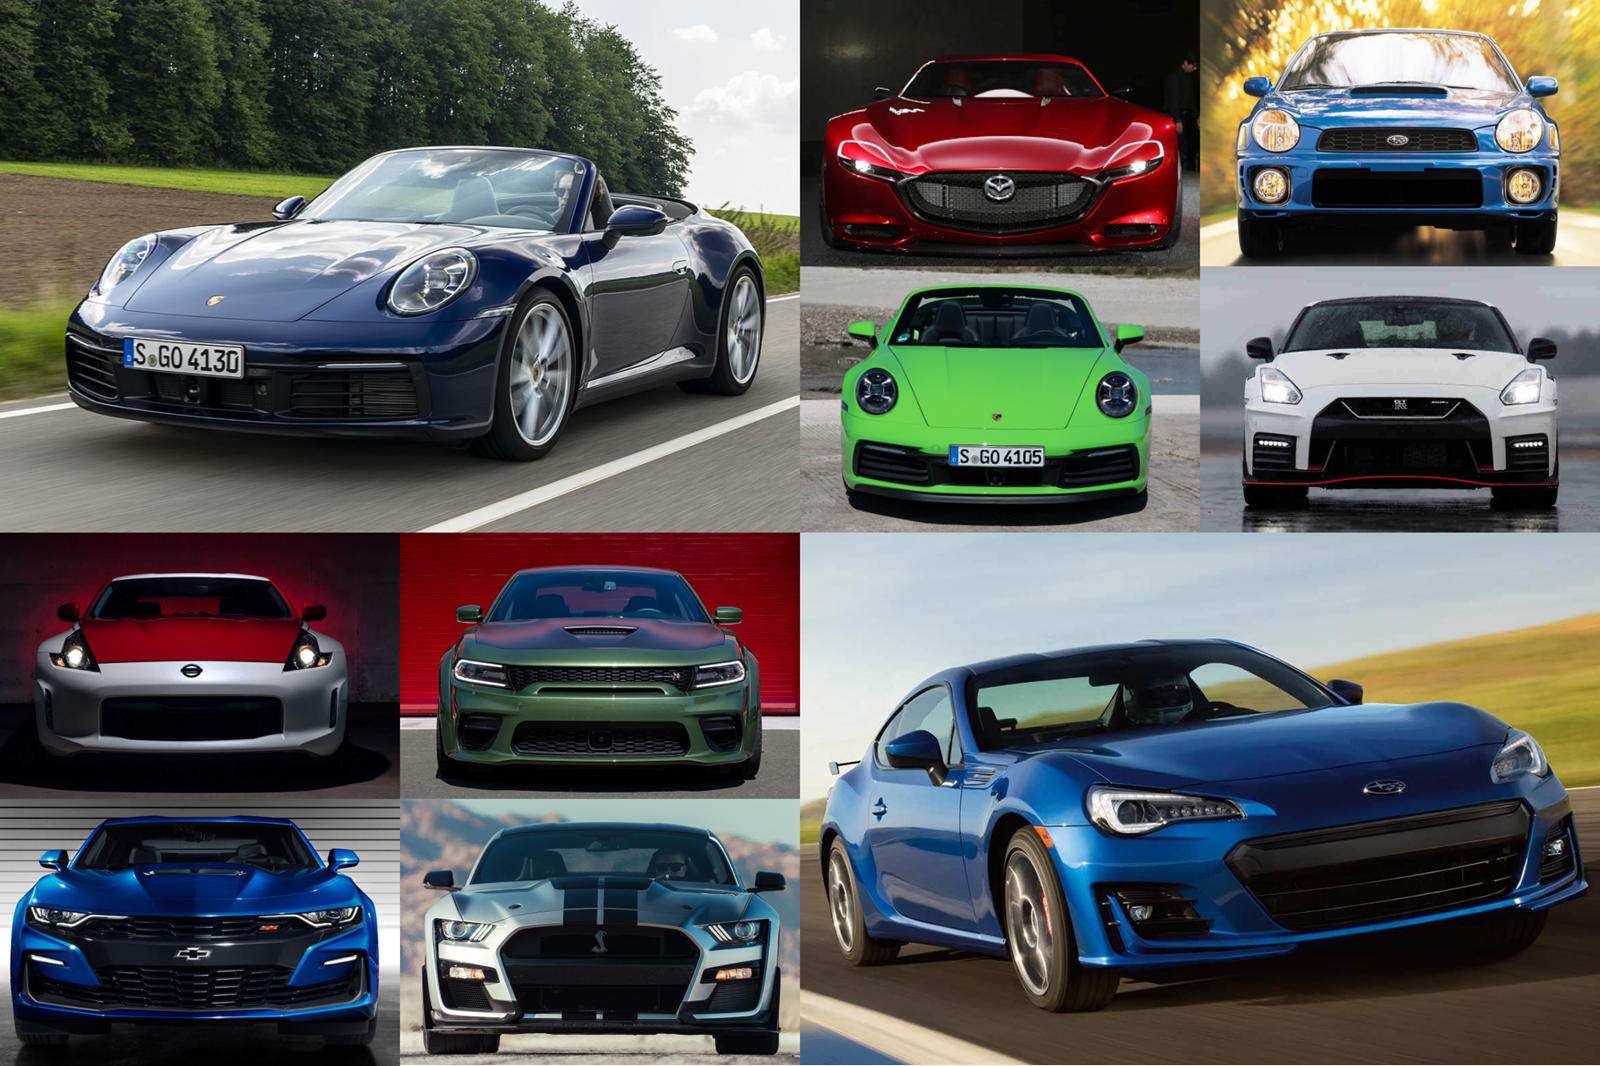 10 Best Sports Cars For Holding Their Value